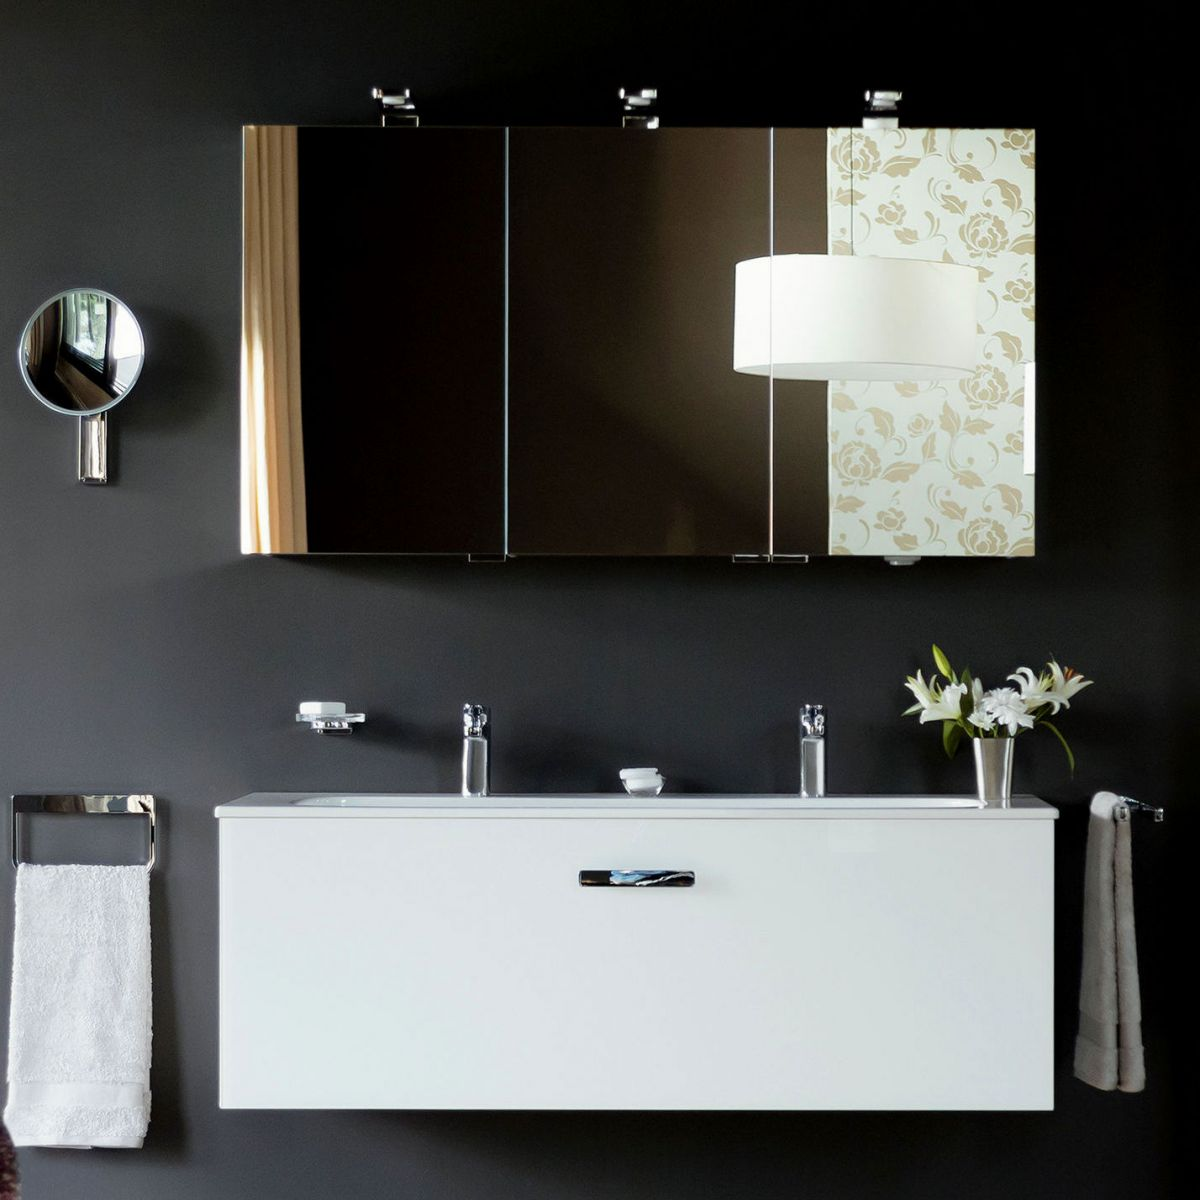 keuco bathroom cabinets keuco royal universe illuminated mirror cabinet uk bathrooms 13299